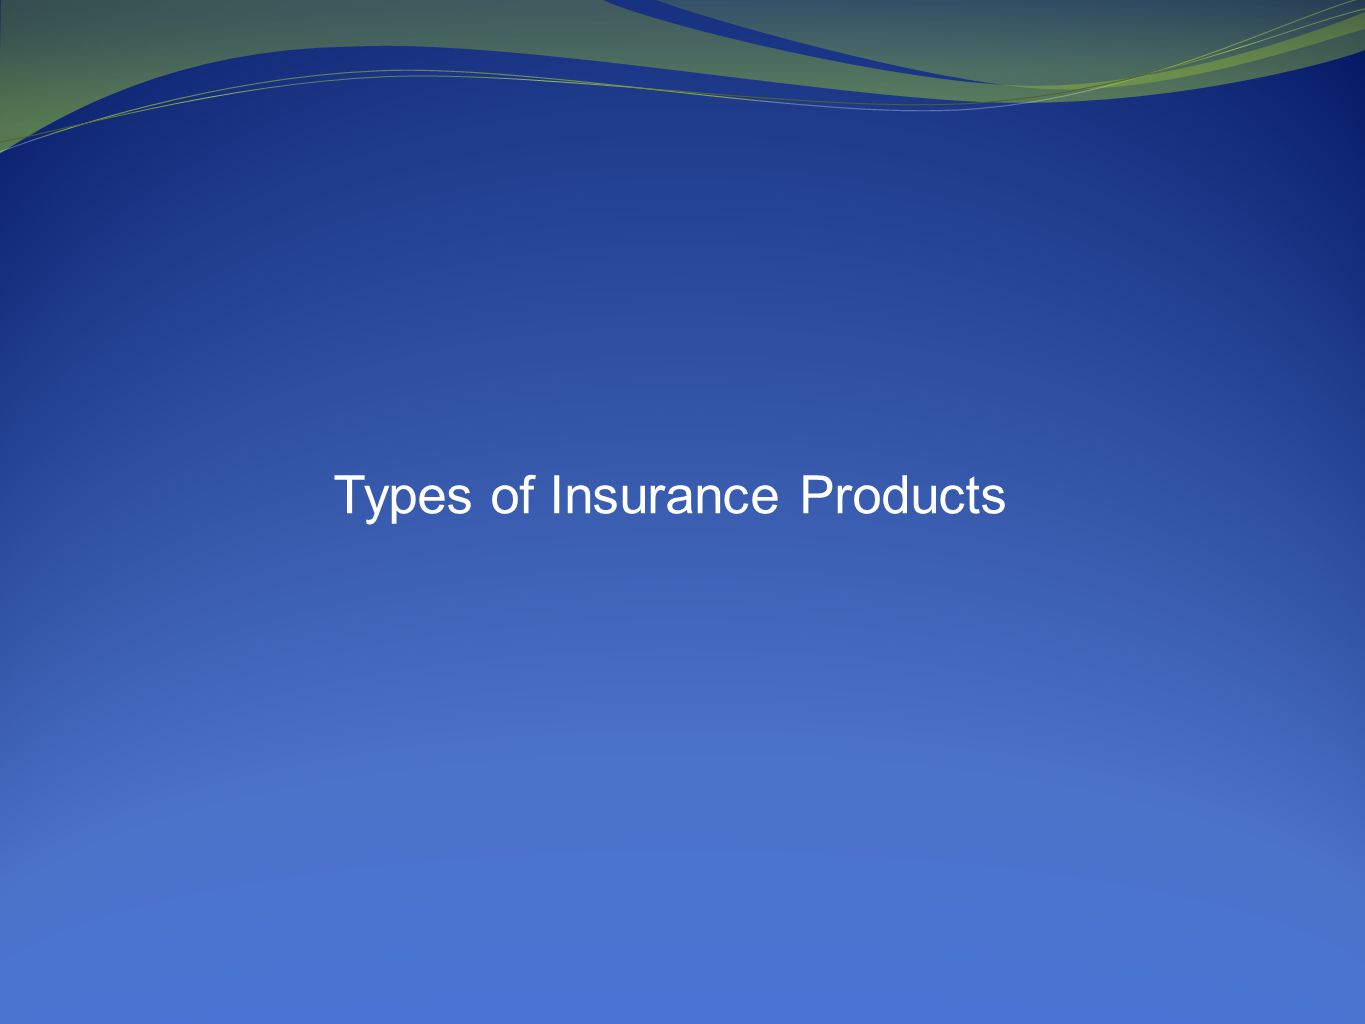 Types of Insurance Products